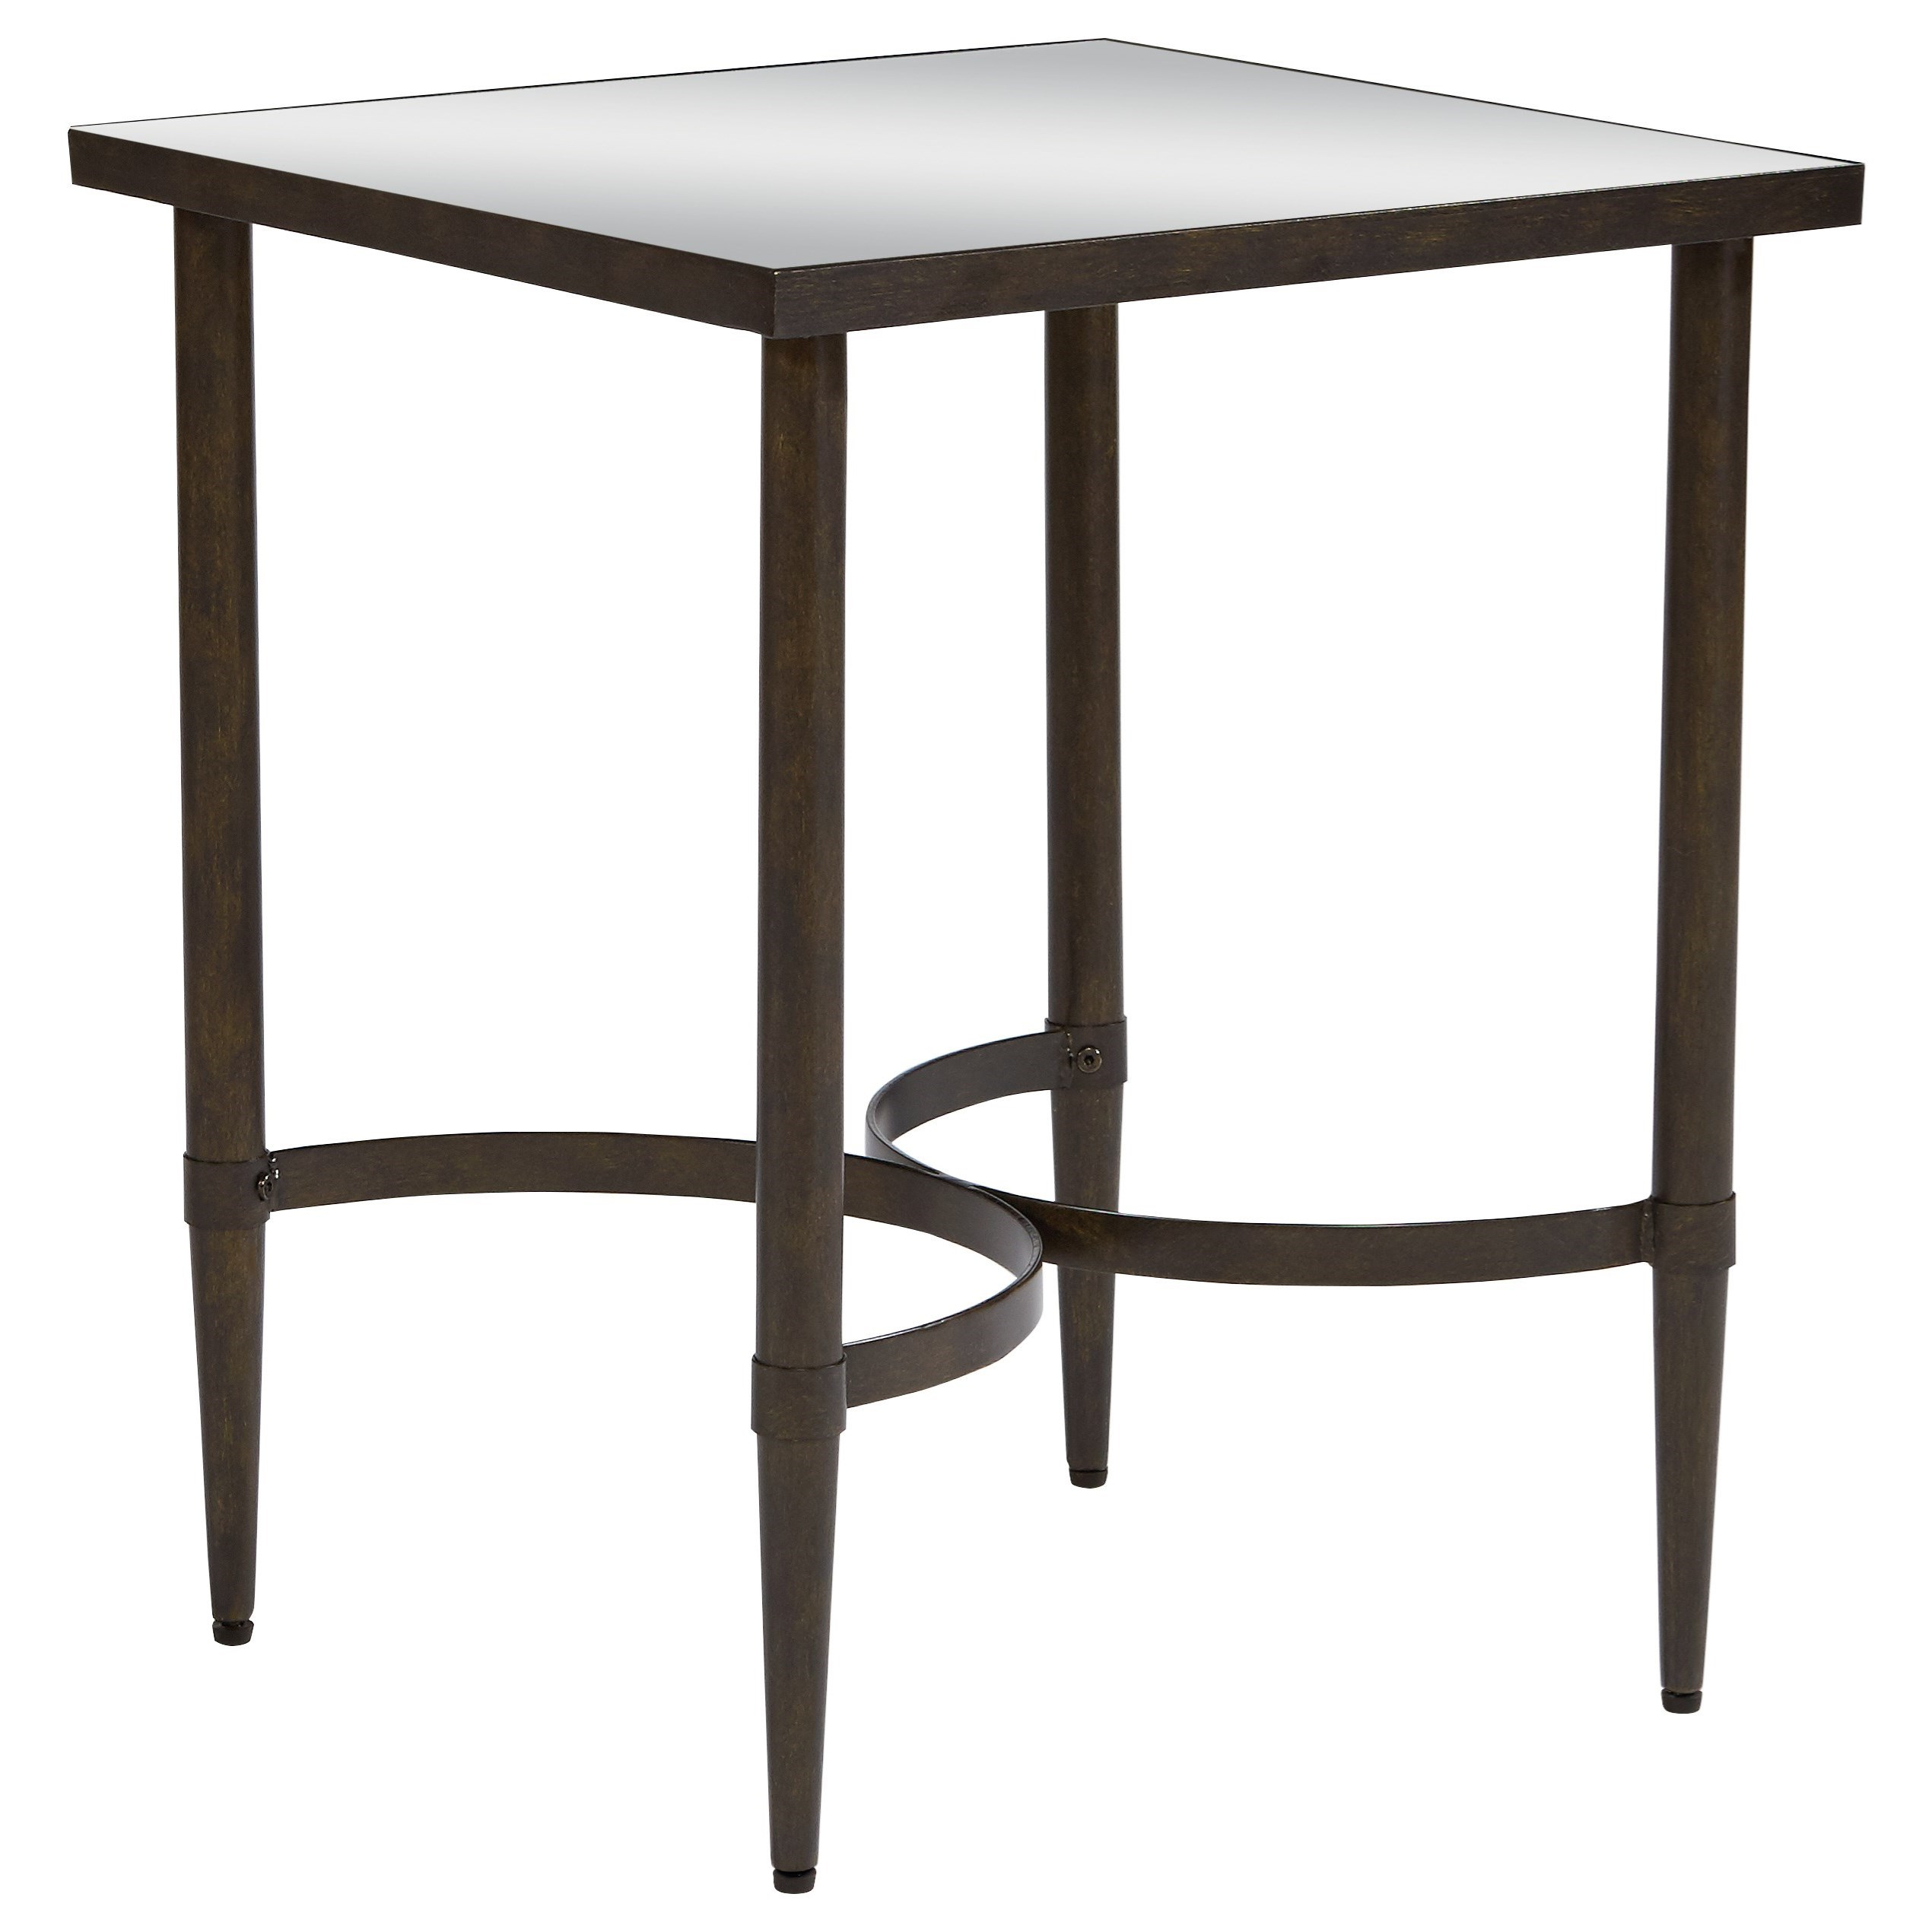 Magnolia home by joanna gaines accent elements end table for Accent end tables